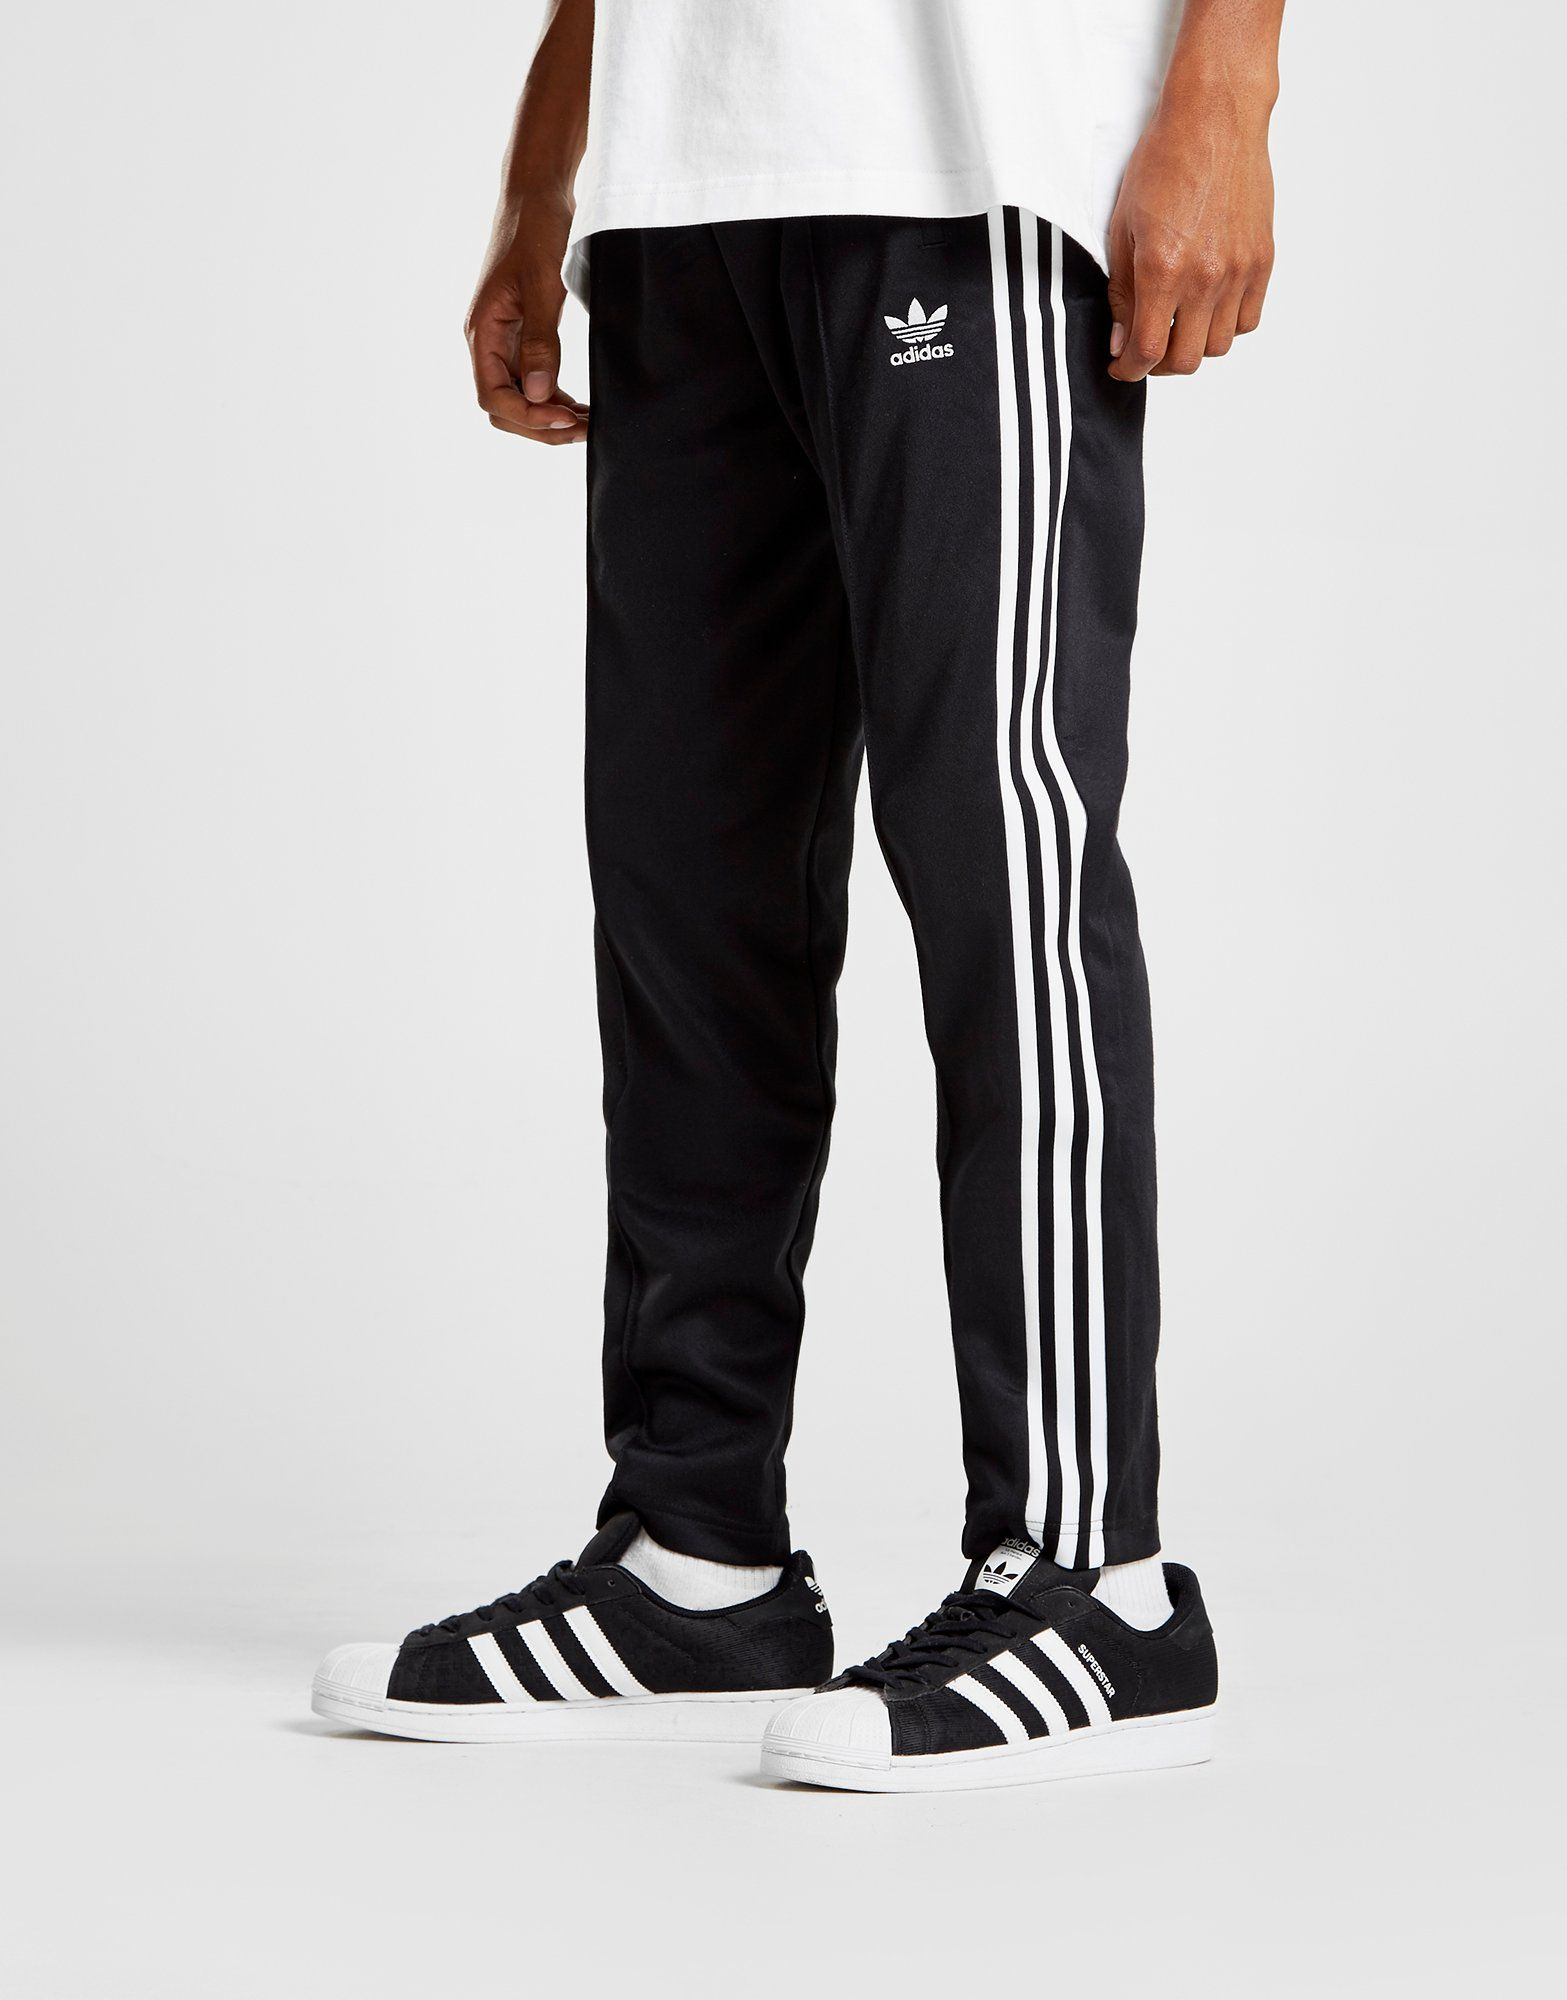 diversified latest designs famous designer brand outlet for sale adidas Originals Beckenbauer Cuffed Track Pants | JD Sports Ireland